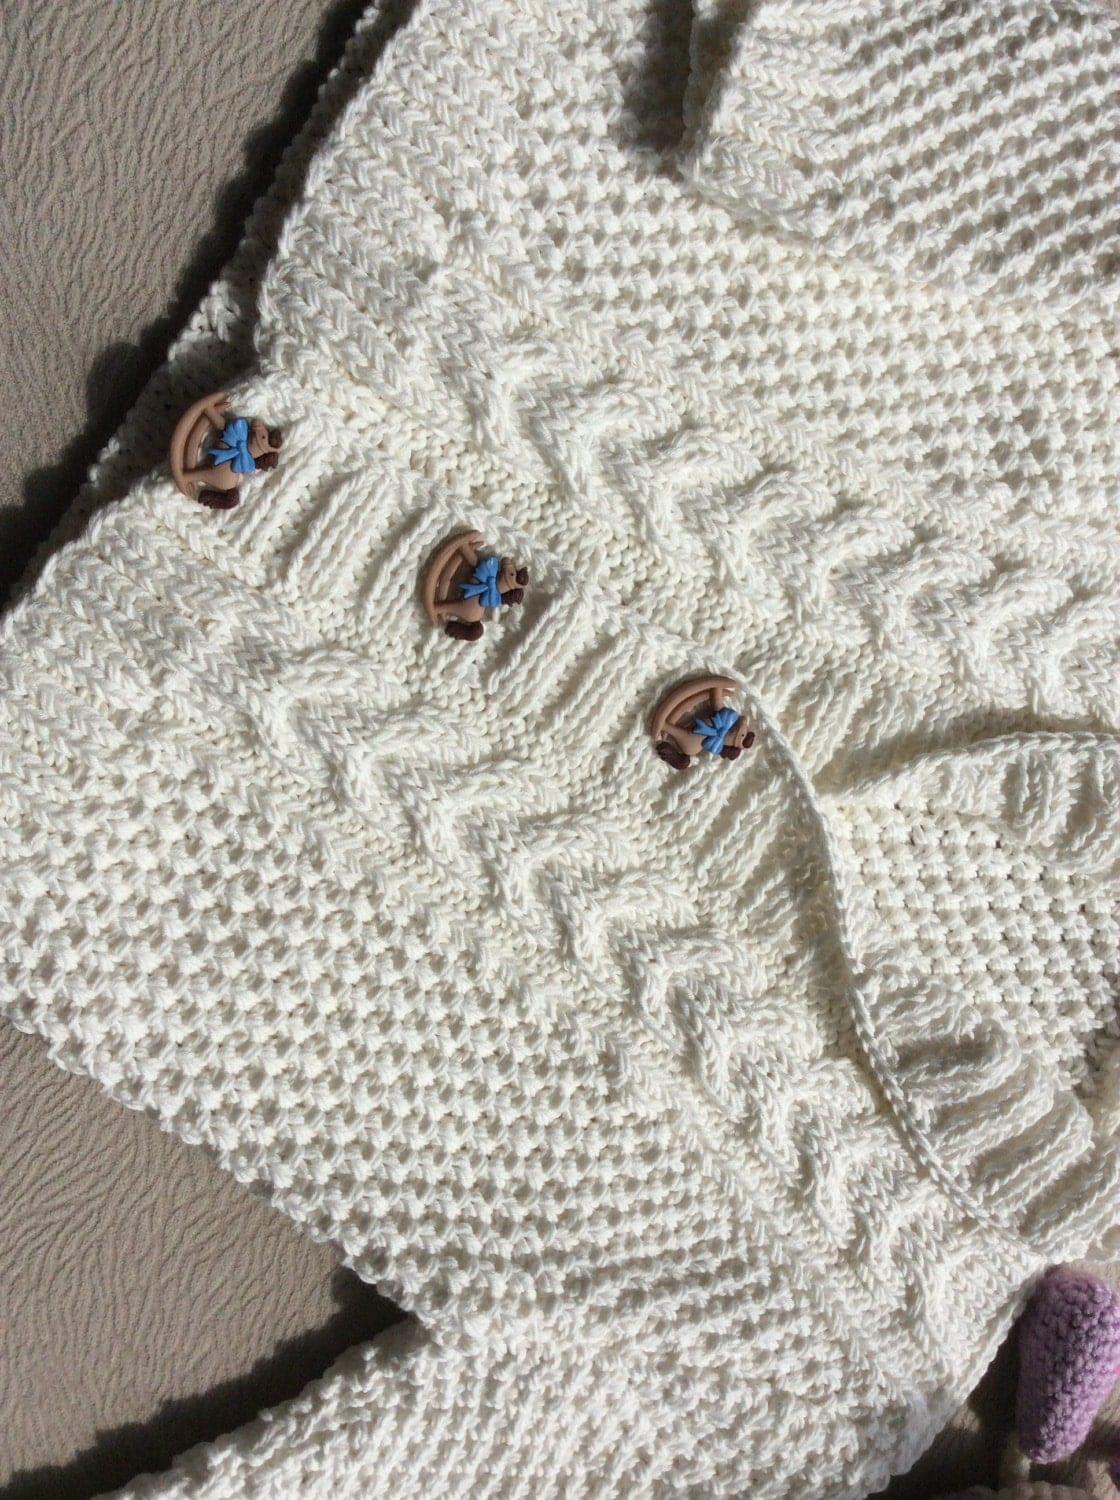 Knit Baby Organic Cotton Sweater Hand Knitted White Baby